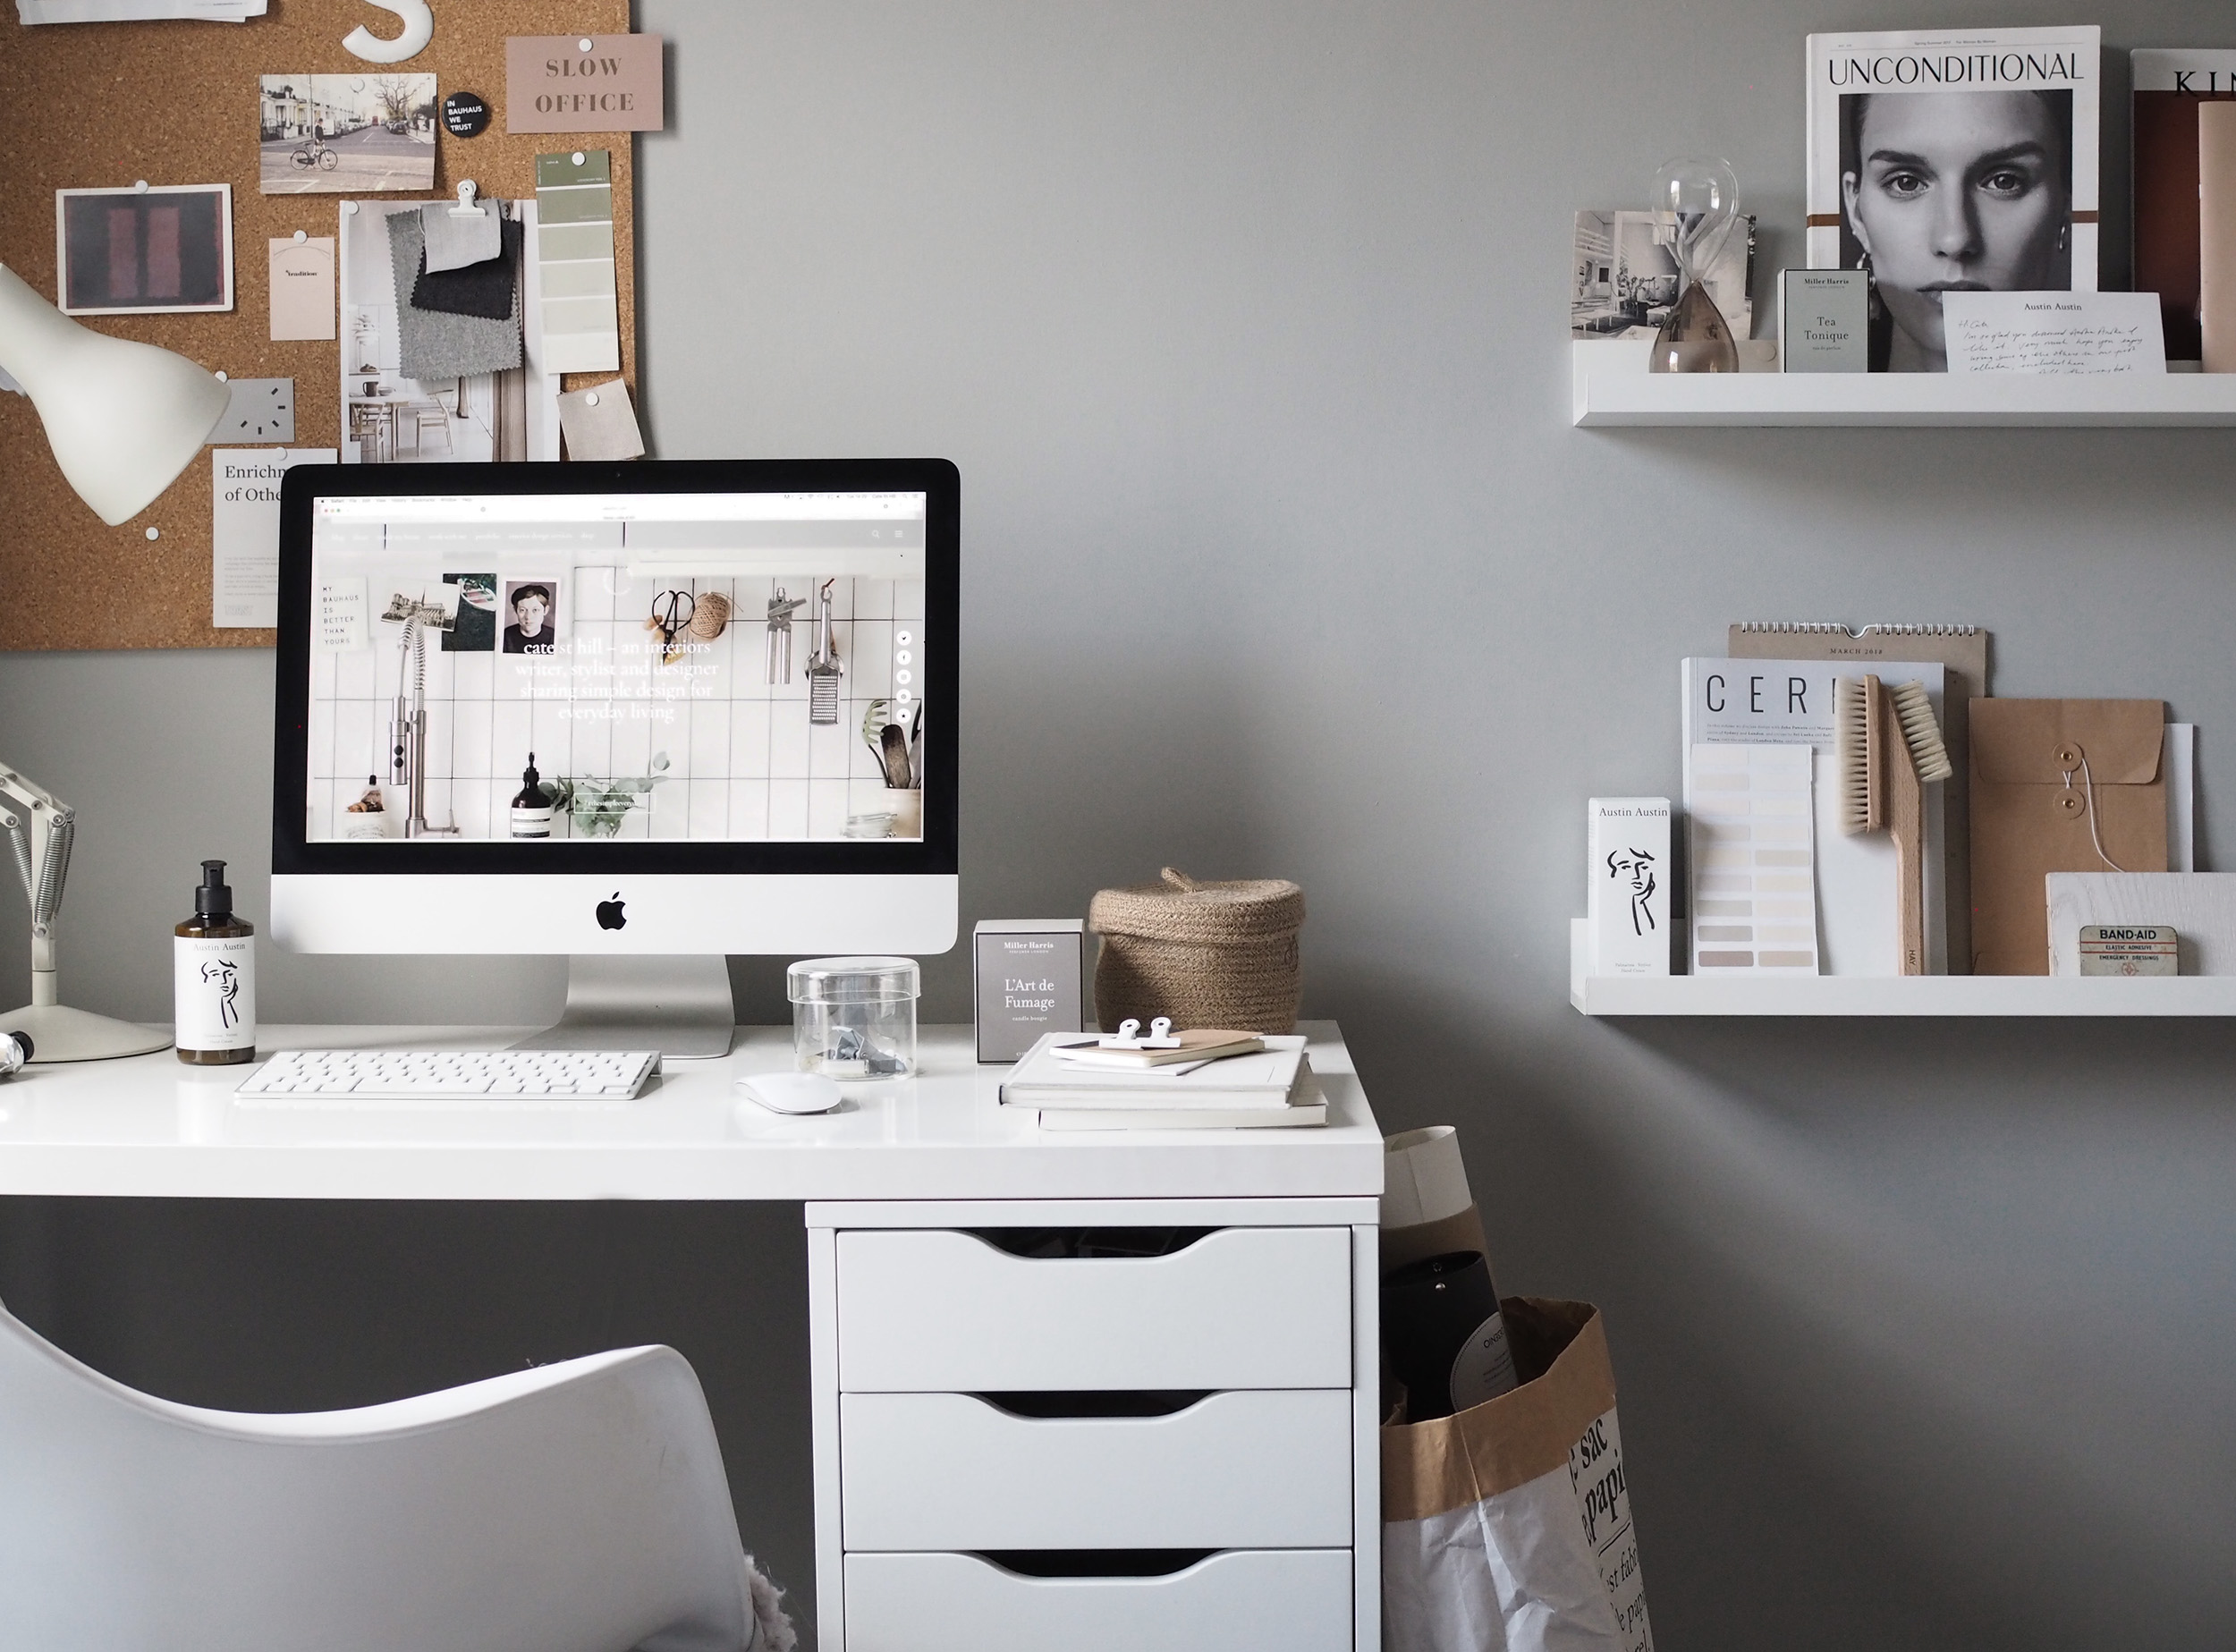 14 Of The Best Minimalist Desks For The Simple Home Office